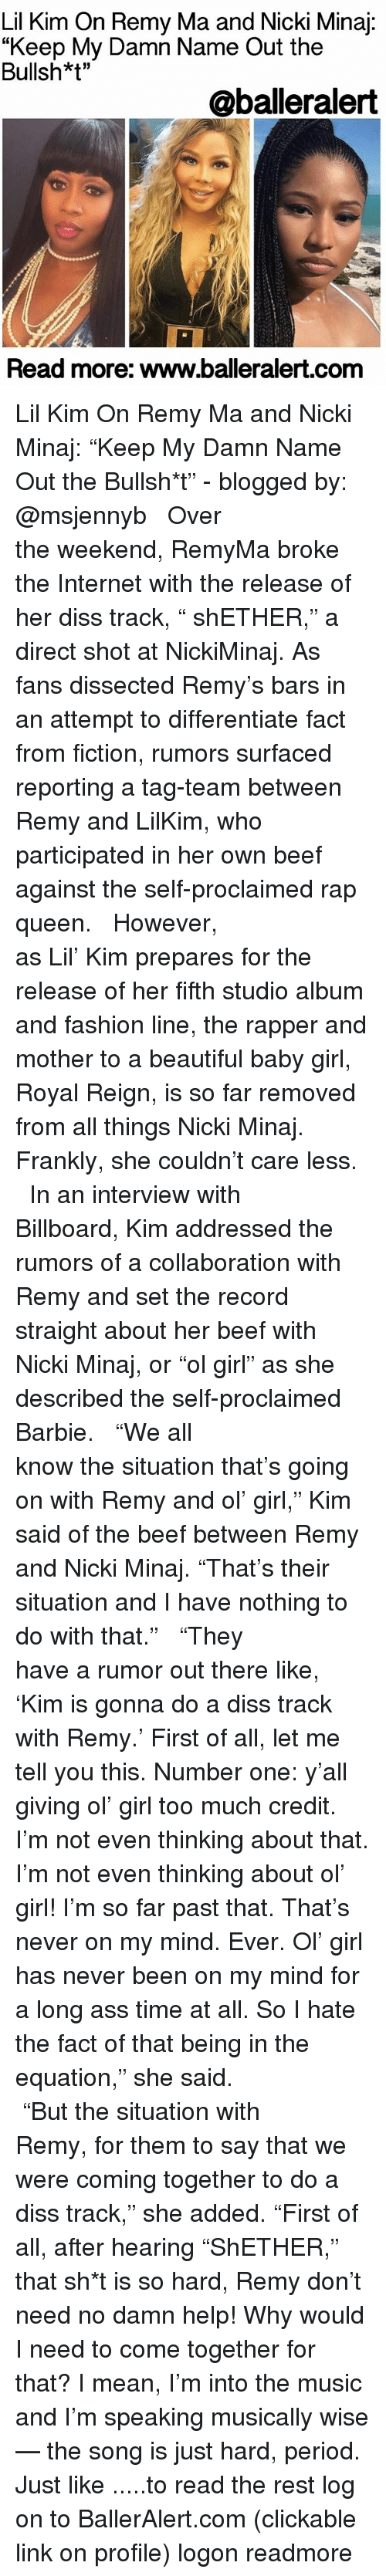 "Beef, Billboard, and Diss: Lil Kim On Remy Ma and Nicki Minaj  ""Keep My Damn Name Out the  Bullsh*t""  @balleralert  Read more: www.balleralert.com Lil Kim On Remy Ma and Nicki Minaj: ""Keep My Damn Name Out the Bullsh*t"" - blogged by: @msjennyb ⠀⠀⠀⠀⠀⠀⠀⠀⠀ ⠀⠀⠀⠀⠀⠀⠀⠀⠀ Over the weekend, RemyMa broke the Internet with the release of her diss track, "" shETHER,"" a direct shot at NickiMinaj. As fans dissected Remy's bars in an attempt to differentiate fact from fiction, rumors surfaced reporting a tag-team between Remy and LilKim, who participated in her own beef against the self-proclaimed rap queen. ⠀⠀⠀⠀⠀⠀⠀⠀⠀ ⠀⠀⠀⠀⠀⠀⠀⠀⠀ However, as Lil' Kim prepares for the release of her fifth studio album and fashion line, the rapper and mother to a beautiful baby girl, Royal Reign, is so far removed from all things Nicki Minaj. Frankly, she couldn't care less. ⠀⠀⠀⠀⠀⠀⠀⠀⠀ ⠀⠀⠀⠀⠀⠀⠀⠀⠀ In an interview with Billboard, Kim addressed the rumors of a collaboration with Remy and set the record straight about her beef with Nicki Minaj, or ""ol girl"" as she described the self-proclaimed Barbie. ⠀⠀⠀⠀⠀⠀⠀⠀⠀ ⠀⠀⠀⠀⠀⠀⠀⠀⠀ ""We all know the situation that's going on with Remy and ol' girl,"" Kim said of the beef between Remy and Nicki Minaj. ""That's their situation and I have nothing to do with that."" ⠀⠀⠀⠀⠀⠀⠀⠀⠀ ⠀⠀⠀⠀⠀⠀⠀⠀⠀ ""They have a rumor out there like, 'Kim is gonna do a diss track with Remy.' First of all, let me tell you this. Number one: y'all giving ol' girl too much credit. I'm not even thinking about that. I'm not even thinking about ol' girl! I'm so far past that. That's never on my mind. Ever. Ol' girl has never been on my mind for a long ass time at all. So I hate the fact of that being in the equation,"" she said. ⠀⠀⠀⠀⠀⠀⠀⠀⠀ ⠀⠀⠀⠀⠀⠀⠀⠀⠀ ""But the situation with Remy, for them to say that we were coming together to do a diss track,"" she added. ""First of all, after hearing ""ShETHER,"" that sh*t is so hard, Remy don't need no damn help! Why would I need to come together for that? I mean, I'm into the music and I'm speaking musically wise — the song is just hard, period. Just like .....to read the rest log on to BallerAlert.com (clickable link on profile) logon readmore"